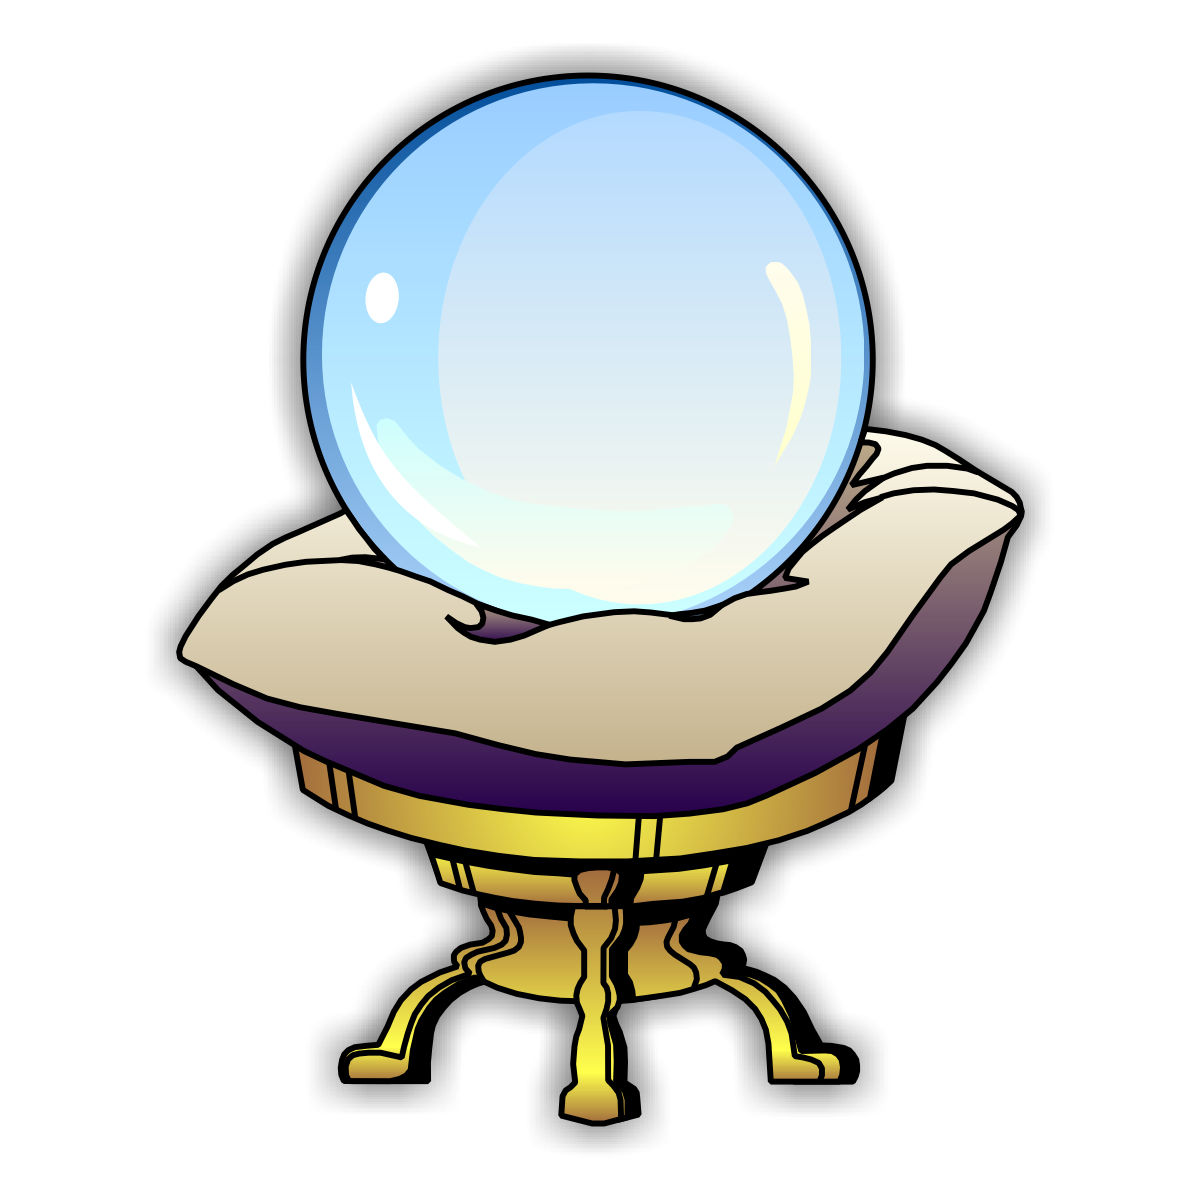 Crystal Ball Colouring Pages-Crystal Ball Colouring Pages-0